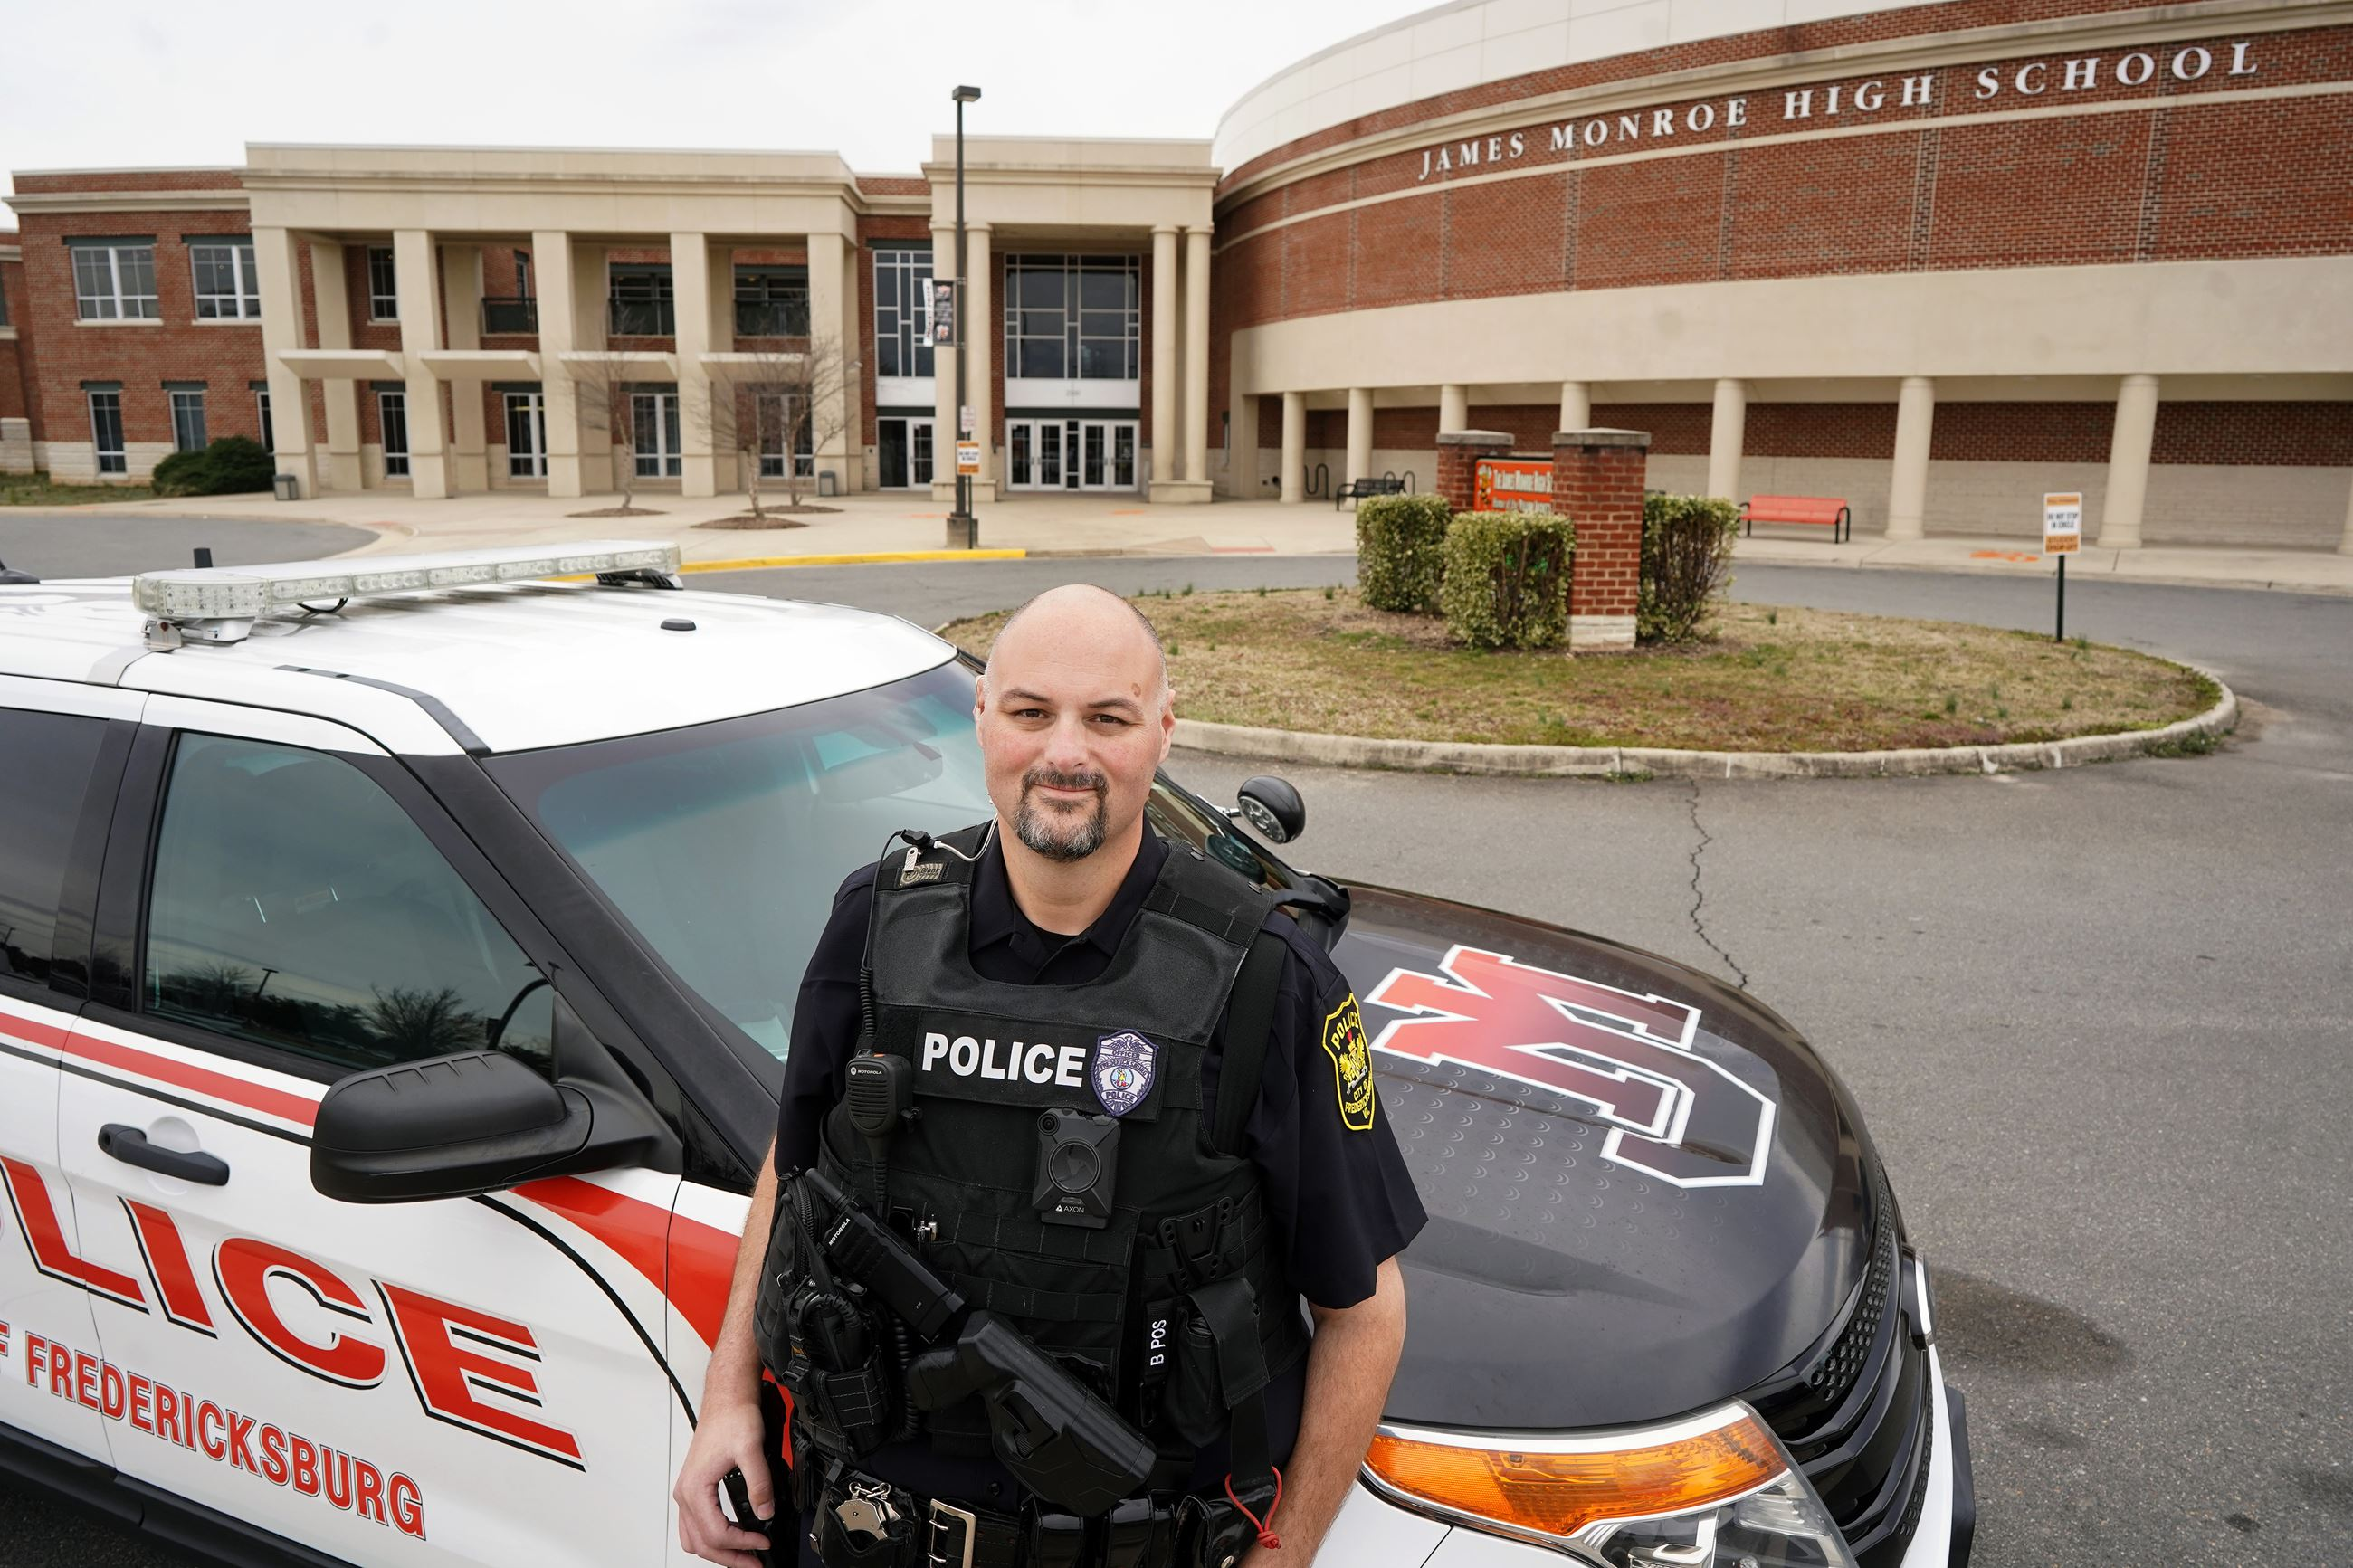 School resource officer outside of James Monroe High School